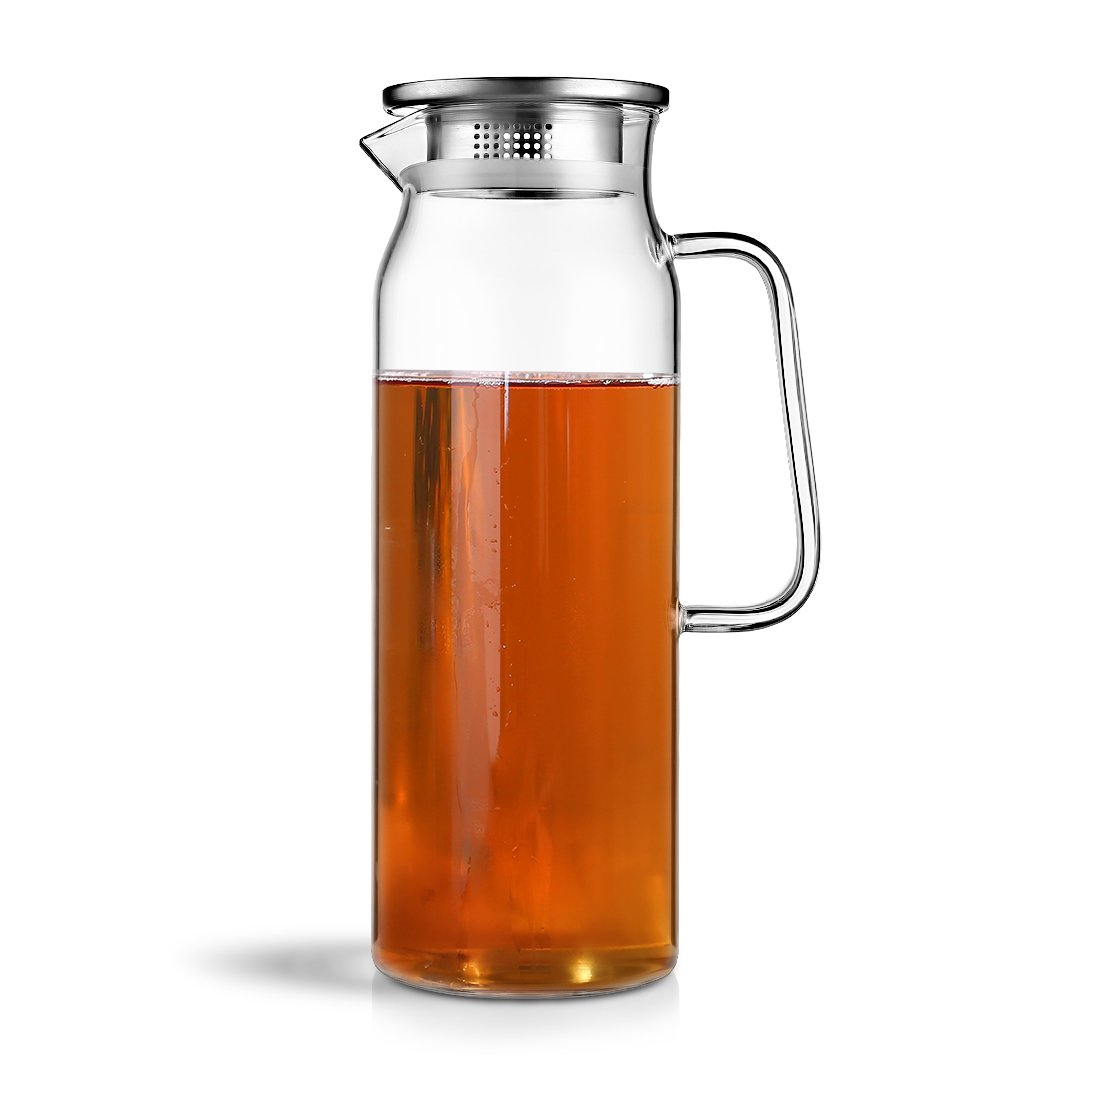 HOLD U FUN 1.7L Glass Water Carafe Pitcher with Stainless Steel Lid, Hot and Cold Water Jar/Carafe for Water,ice tea Juice container,fridge pitcher with handle(1700ML)